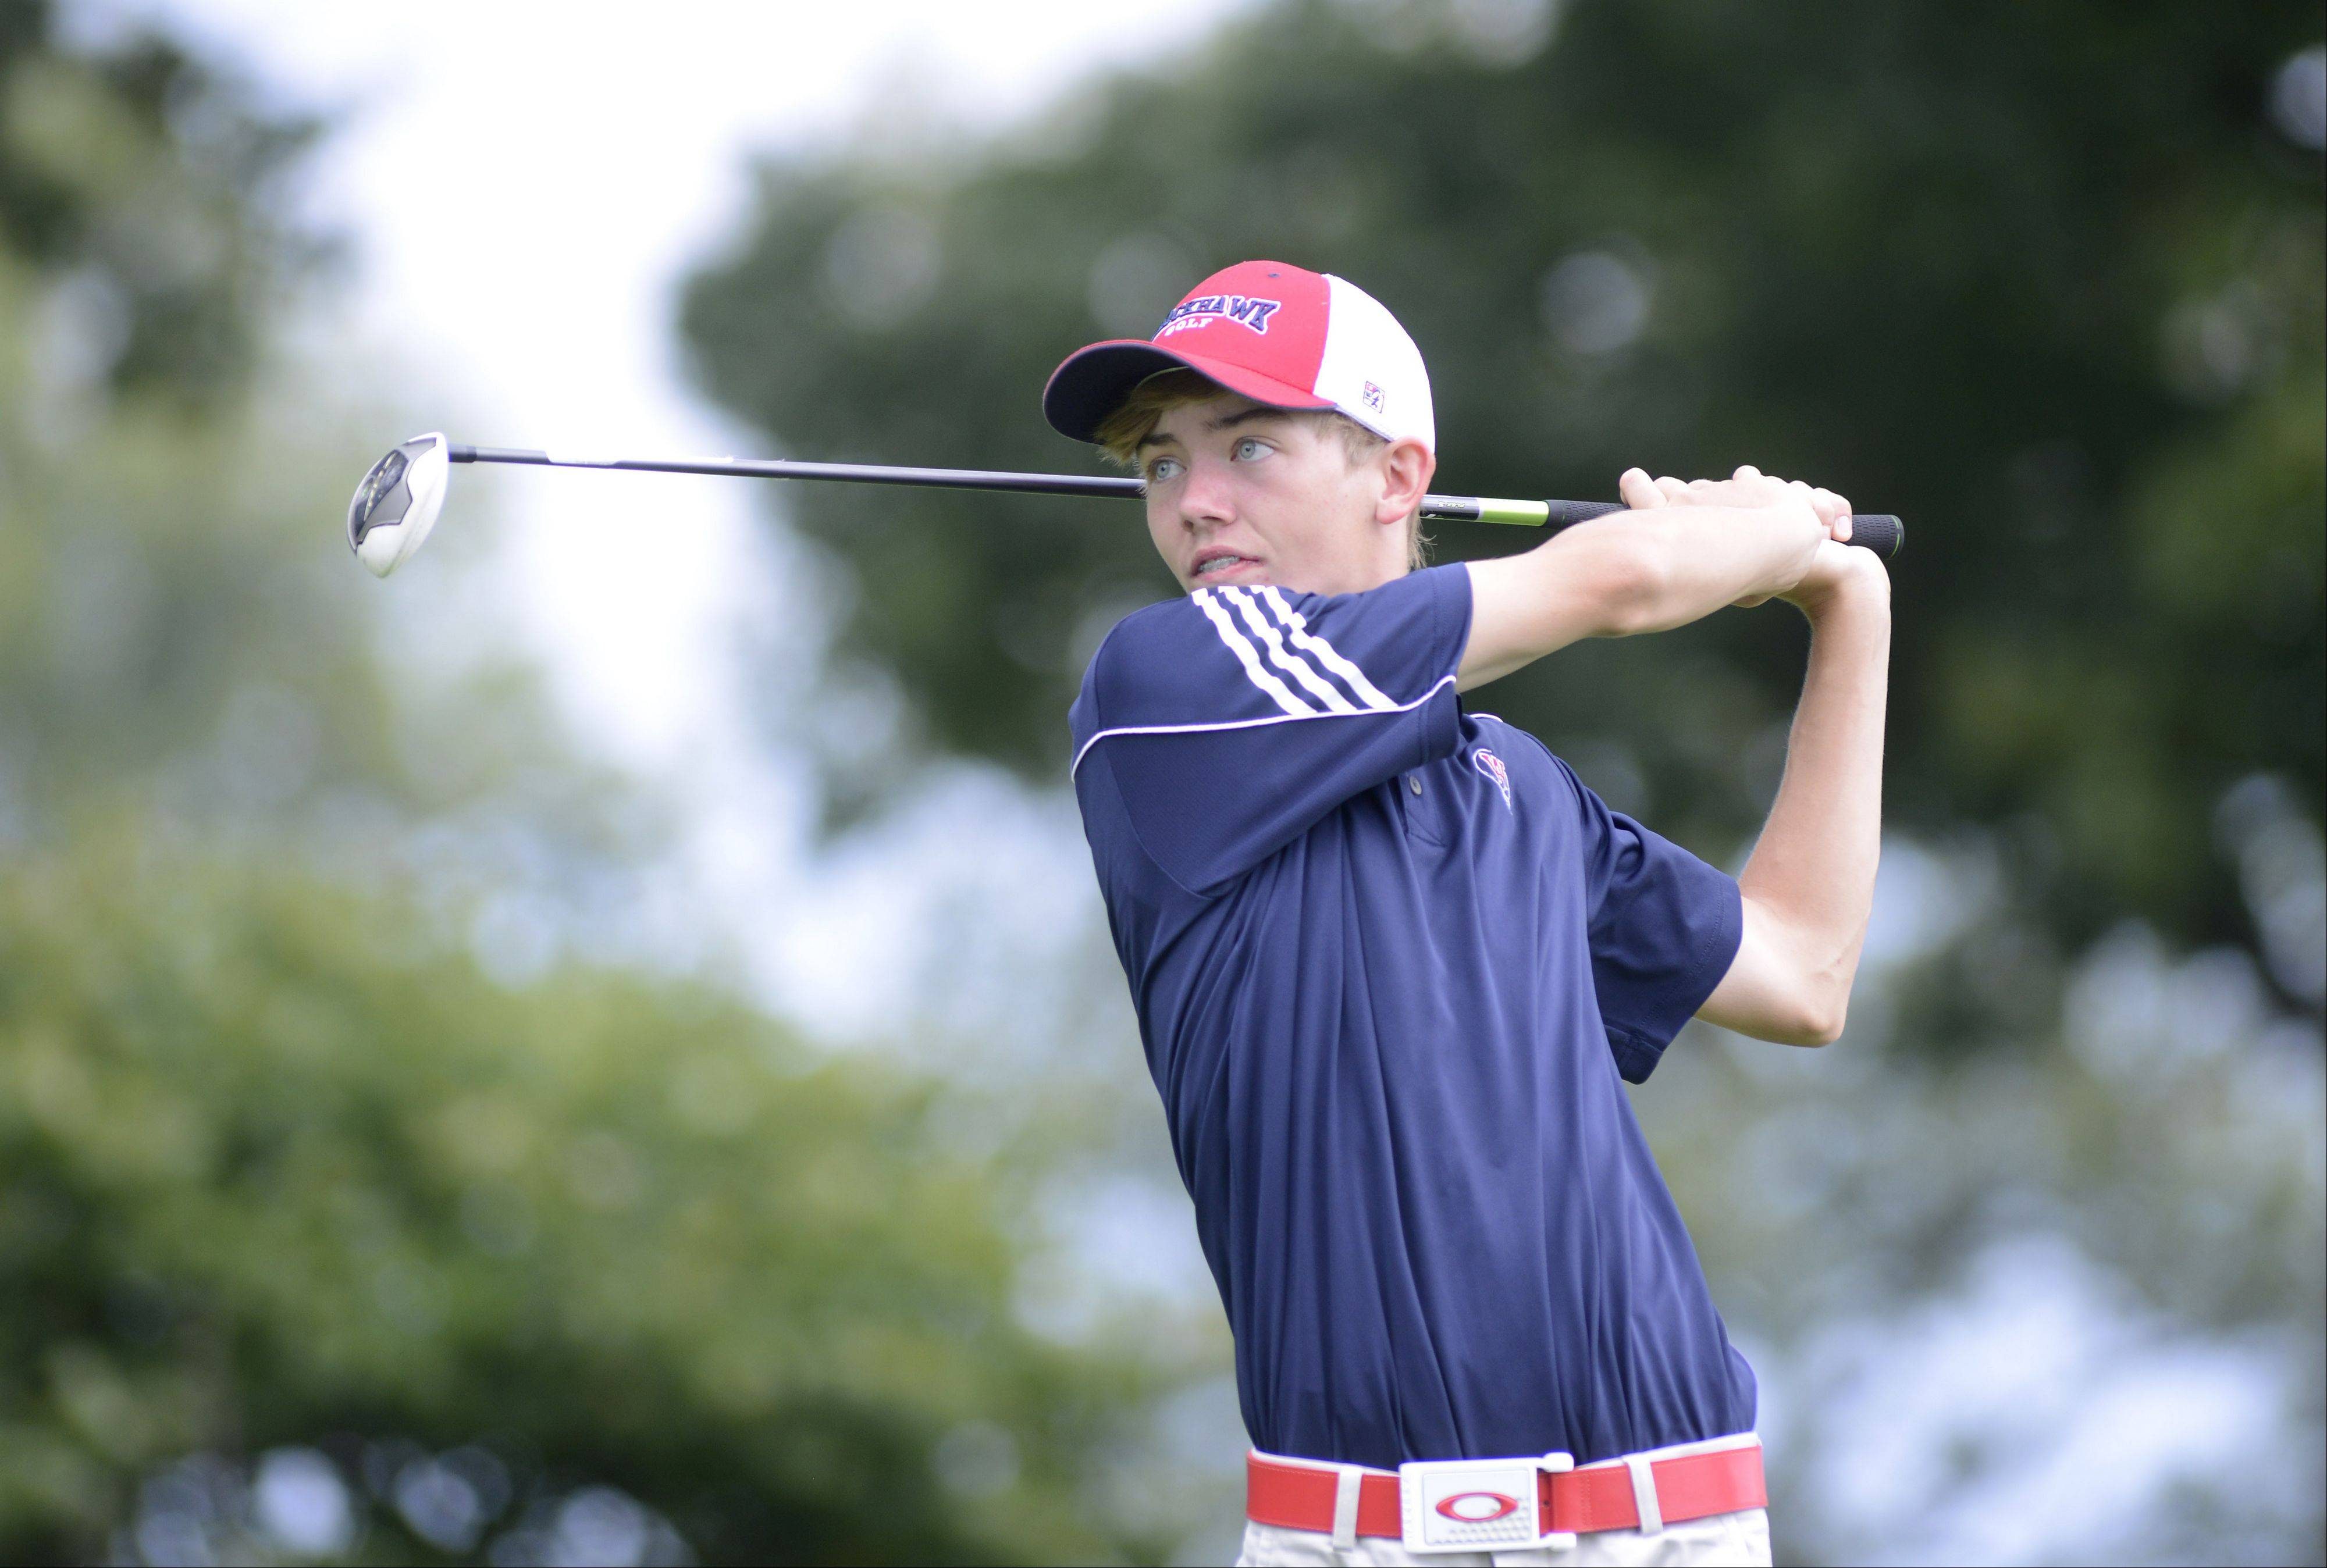 West Aurora's Daniel Newsome tees off at the seventh hole at Phillips Park Golf Course in Aurora on Wednesday, September 18.